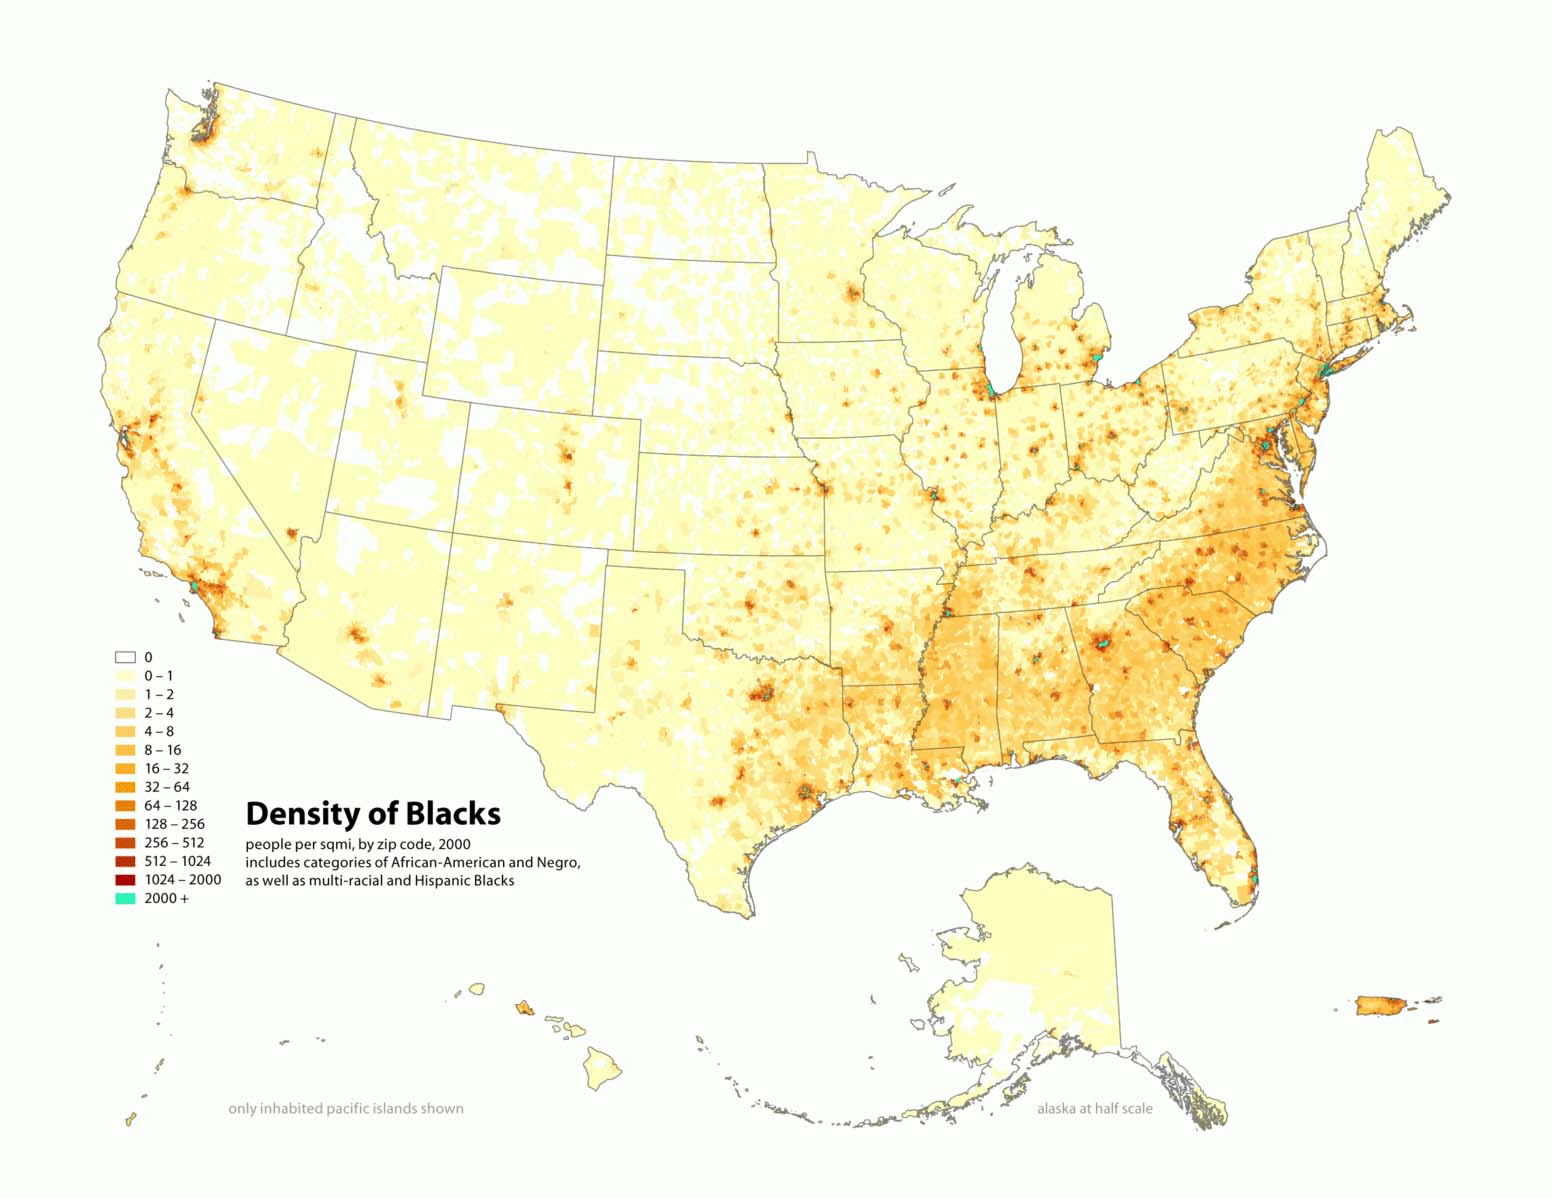 Density of Black population in the United States